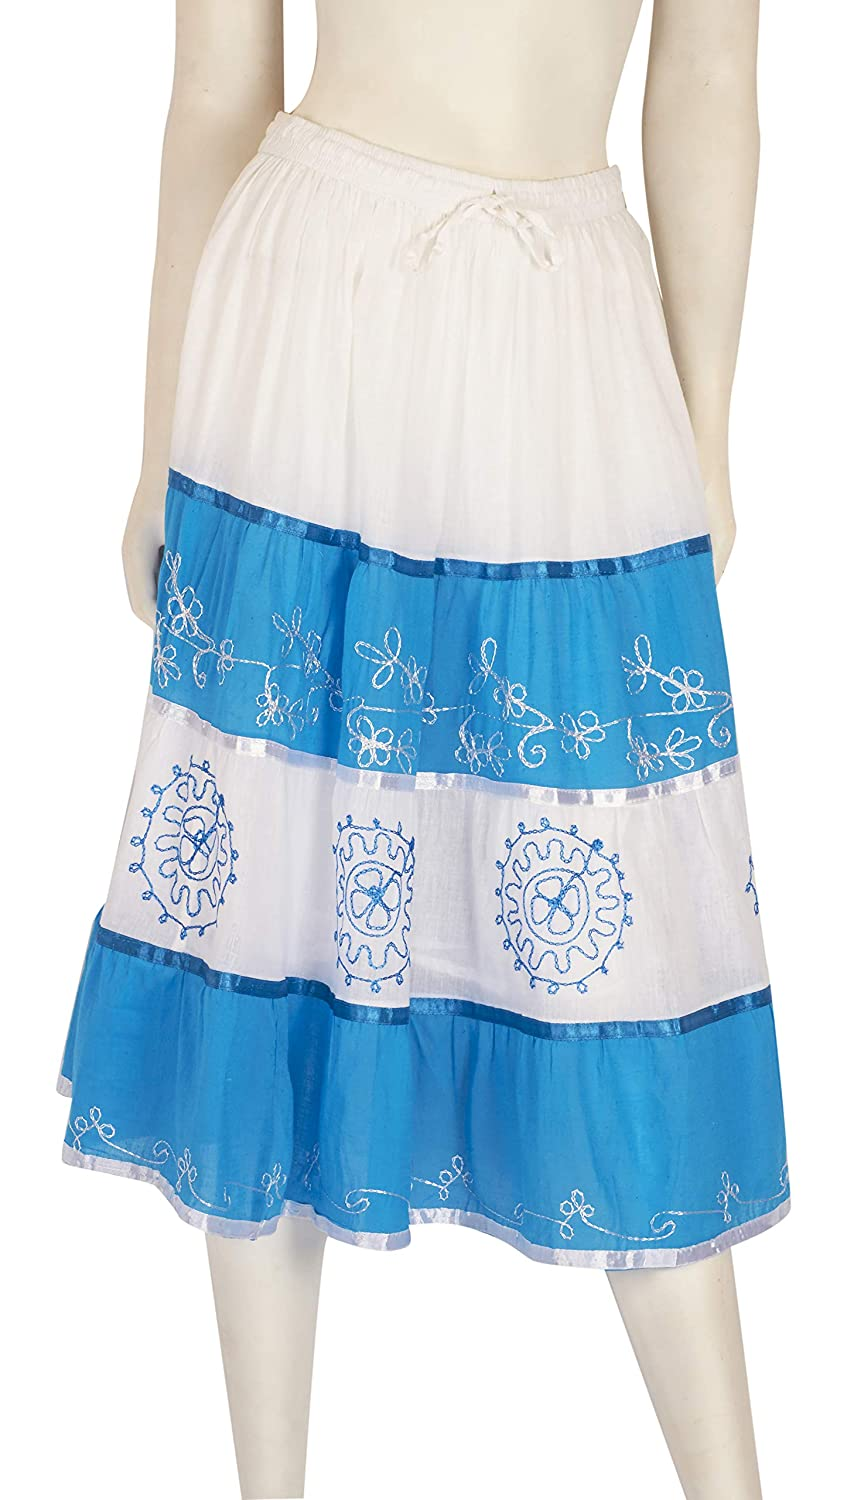 JOTW Womens Indian Mid Length Two-Tone Skirts with Embroidery Design LAD#207M